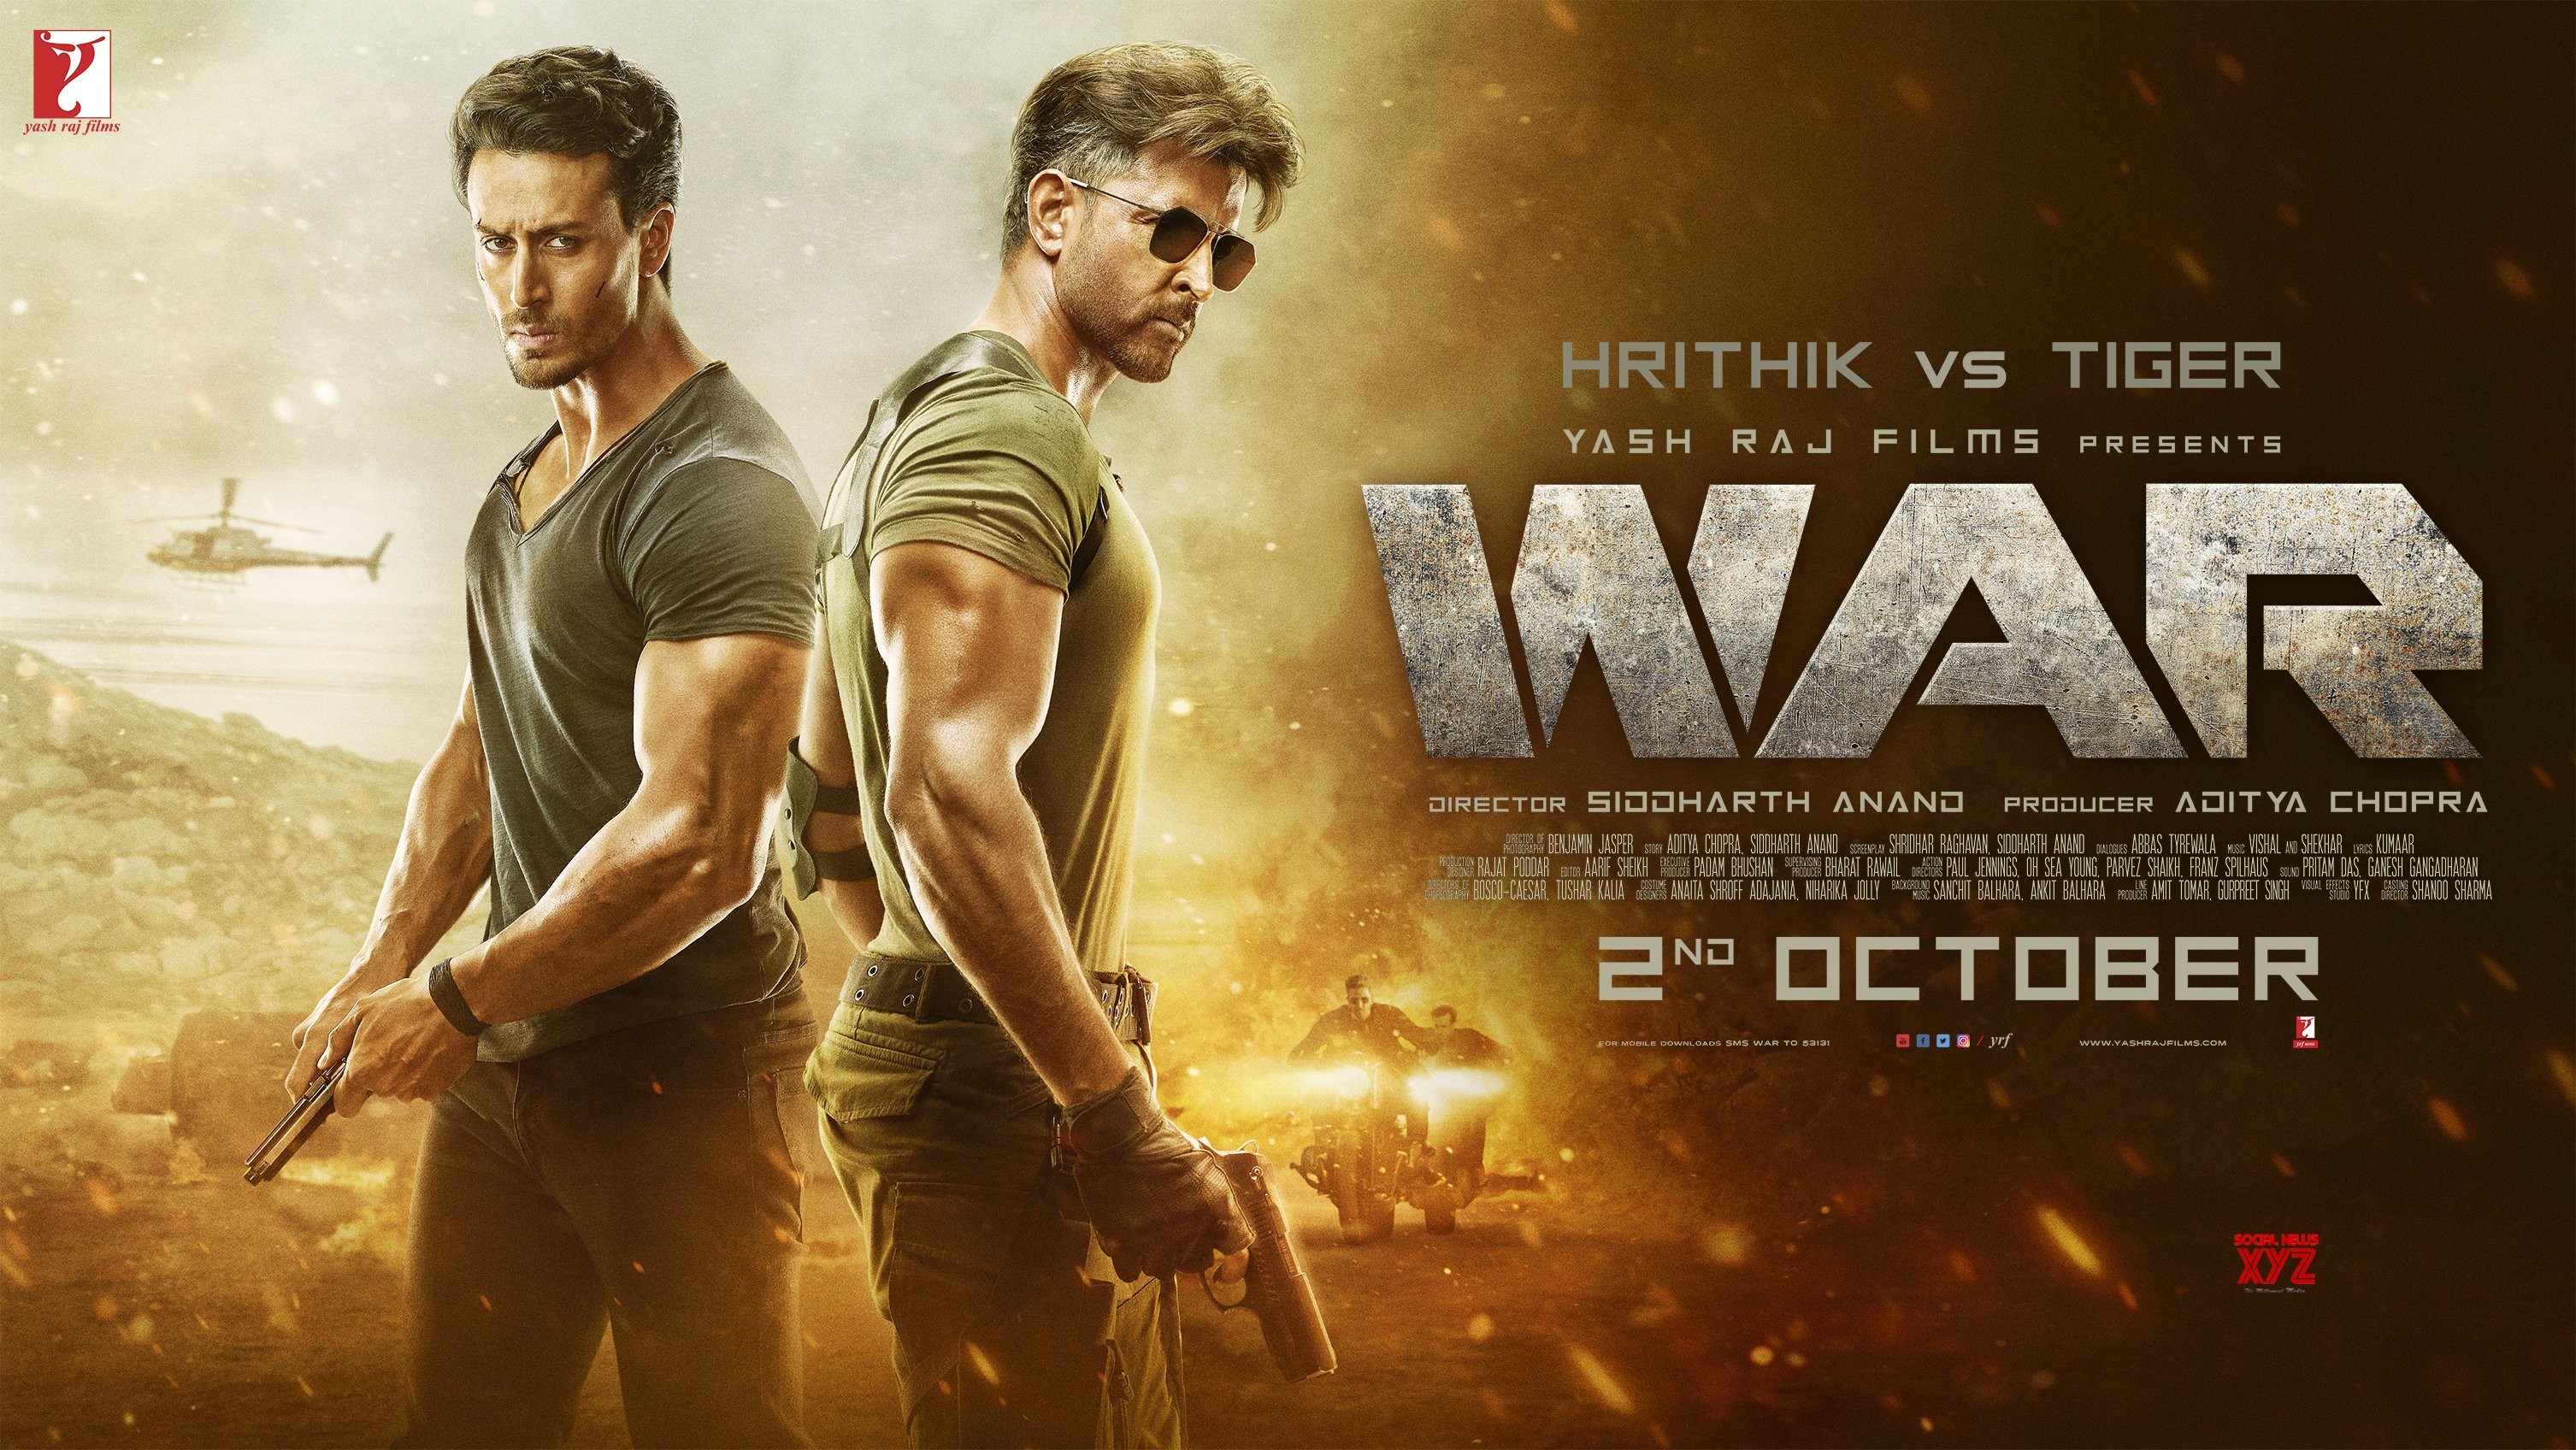 Hrithik Roshan And Tiger Shroff's War Movie Release Date HD